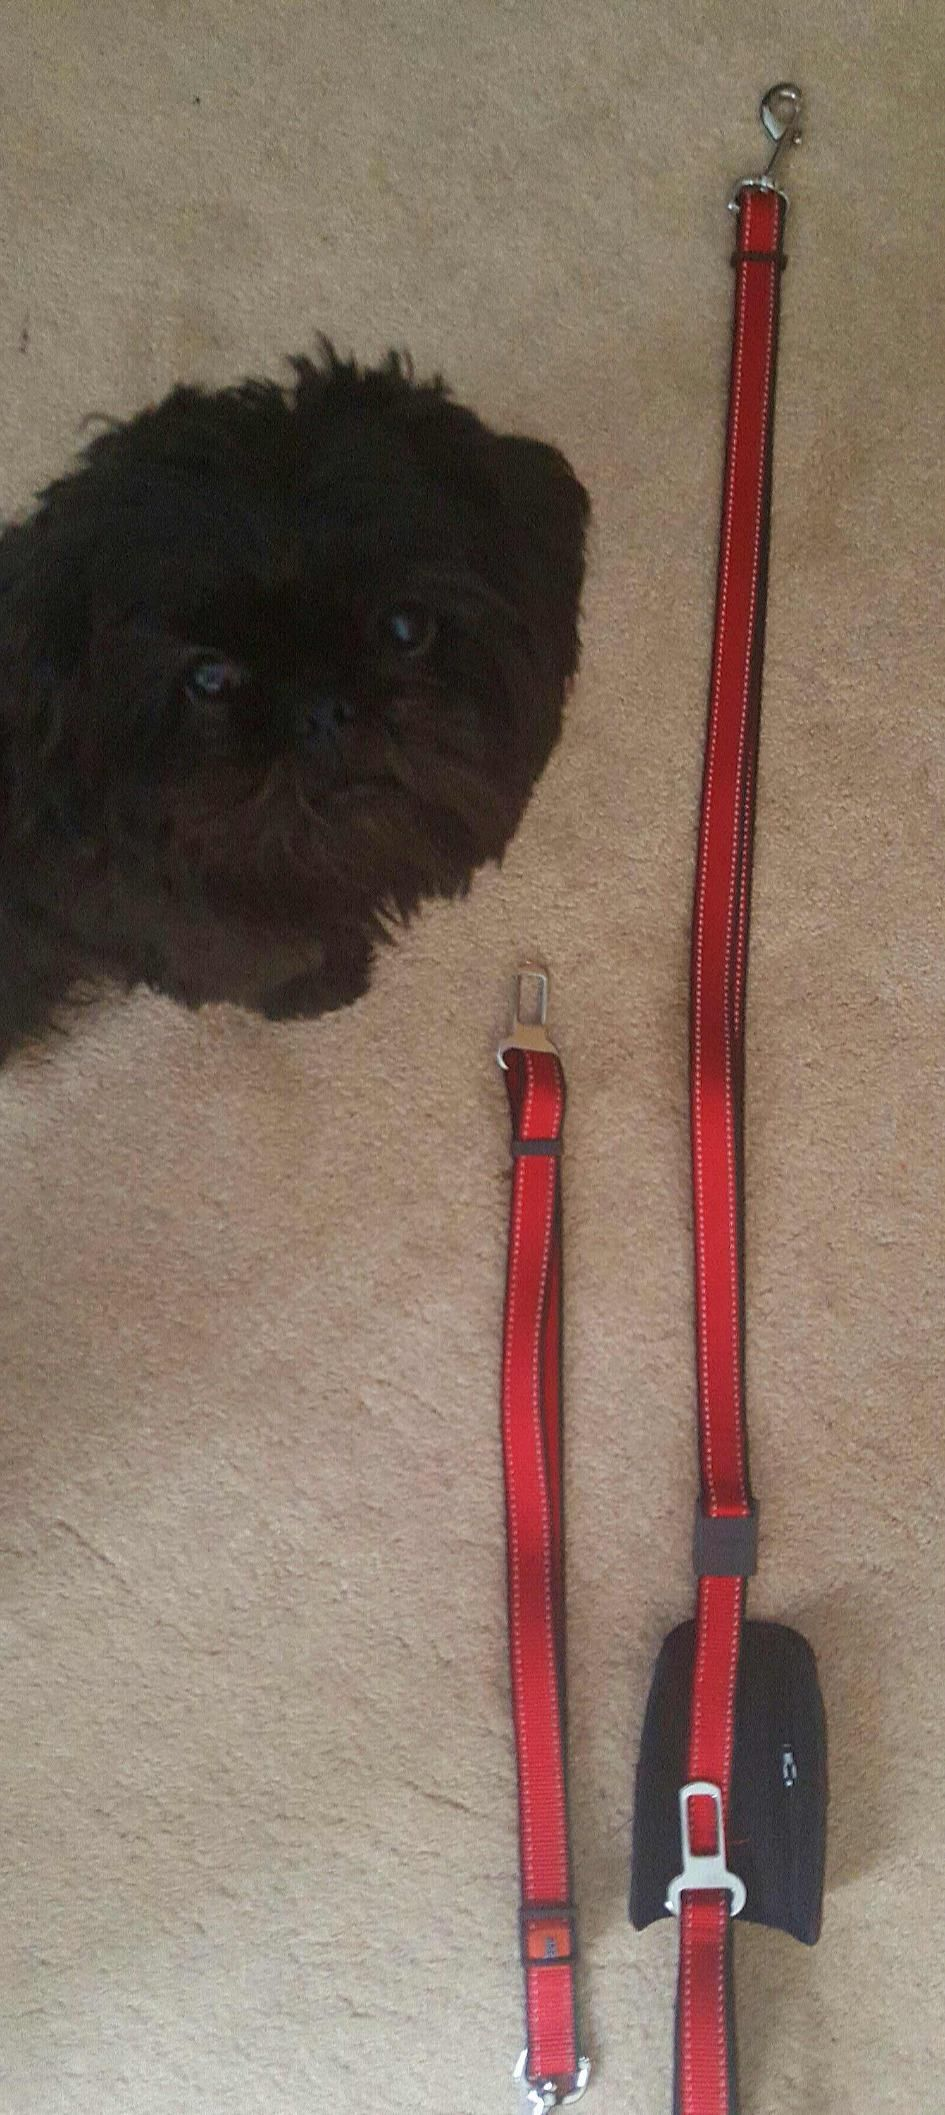 Amazon Customer Reviews Two Dog Seat Belt Leashes No1. Customer Reviews Dog Seat Belt Premium Adjustable Reflective Pet Leashes Pocket With Zipper For Waste Bags Leash Gellike Padded Handle Safety. Seat. Seat Belt Harness Zipper At Scoala.co